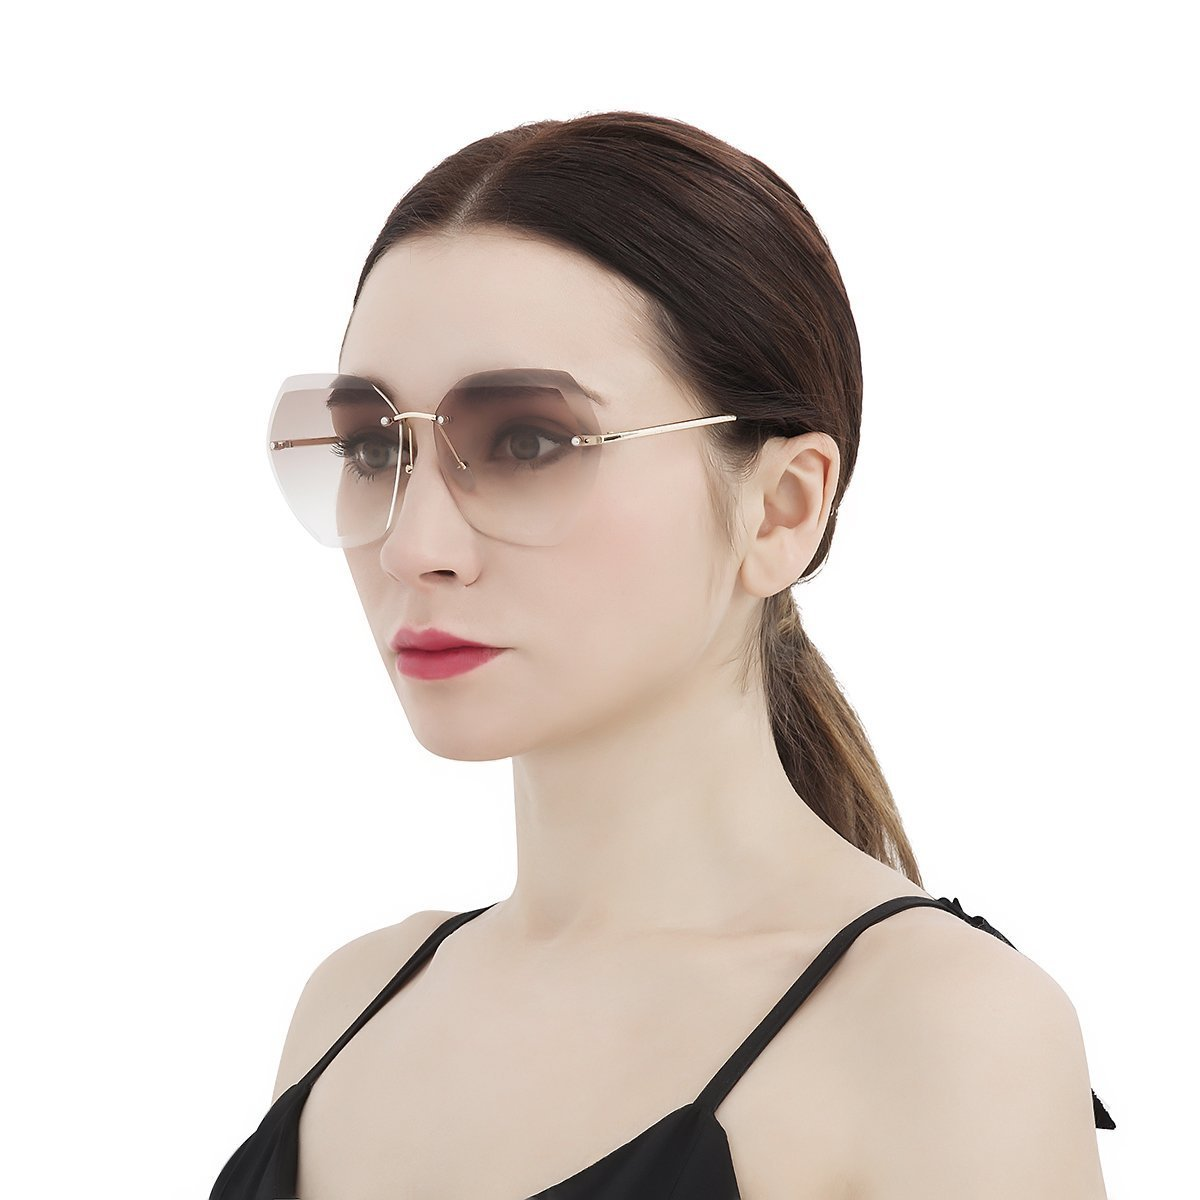 WISH CLUB Oversized Fashion Rimless Sunglasses for Women Hexagonal Flat Lens Frameless Rimmed Eyewear for Girls UV Transparent Glasses (Brown) 7741